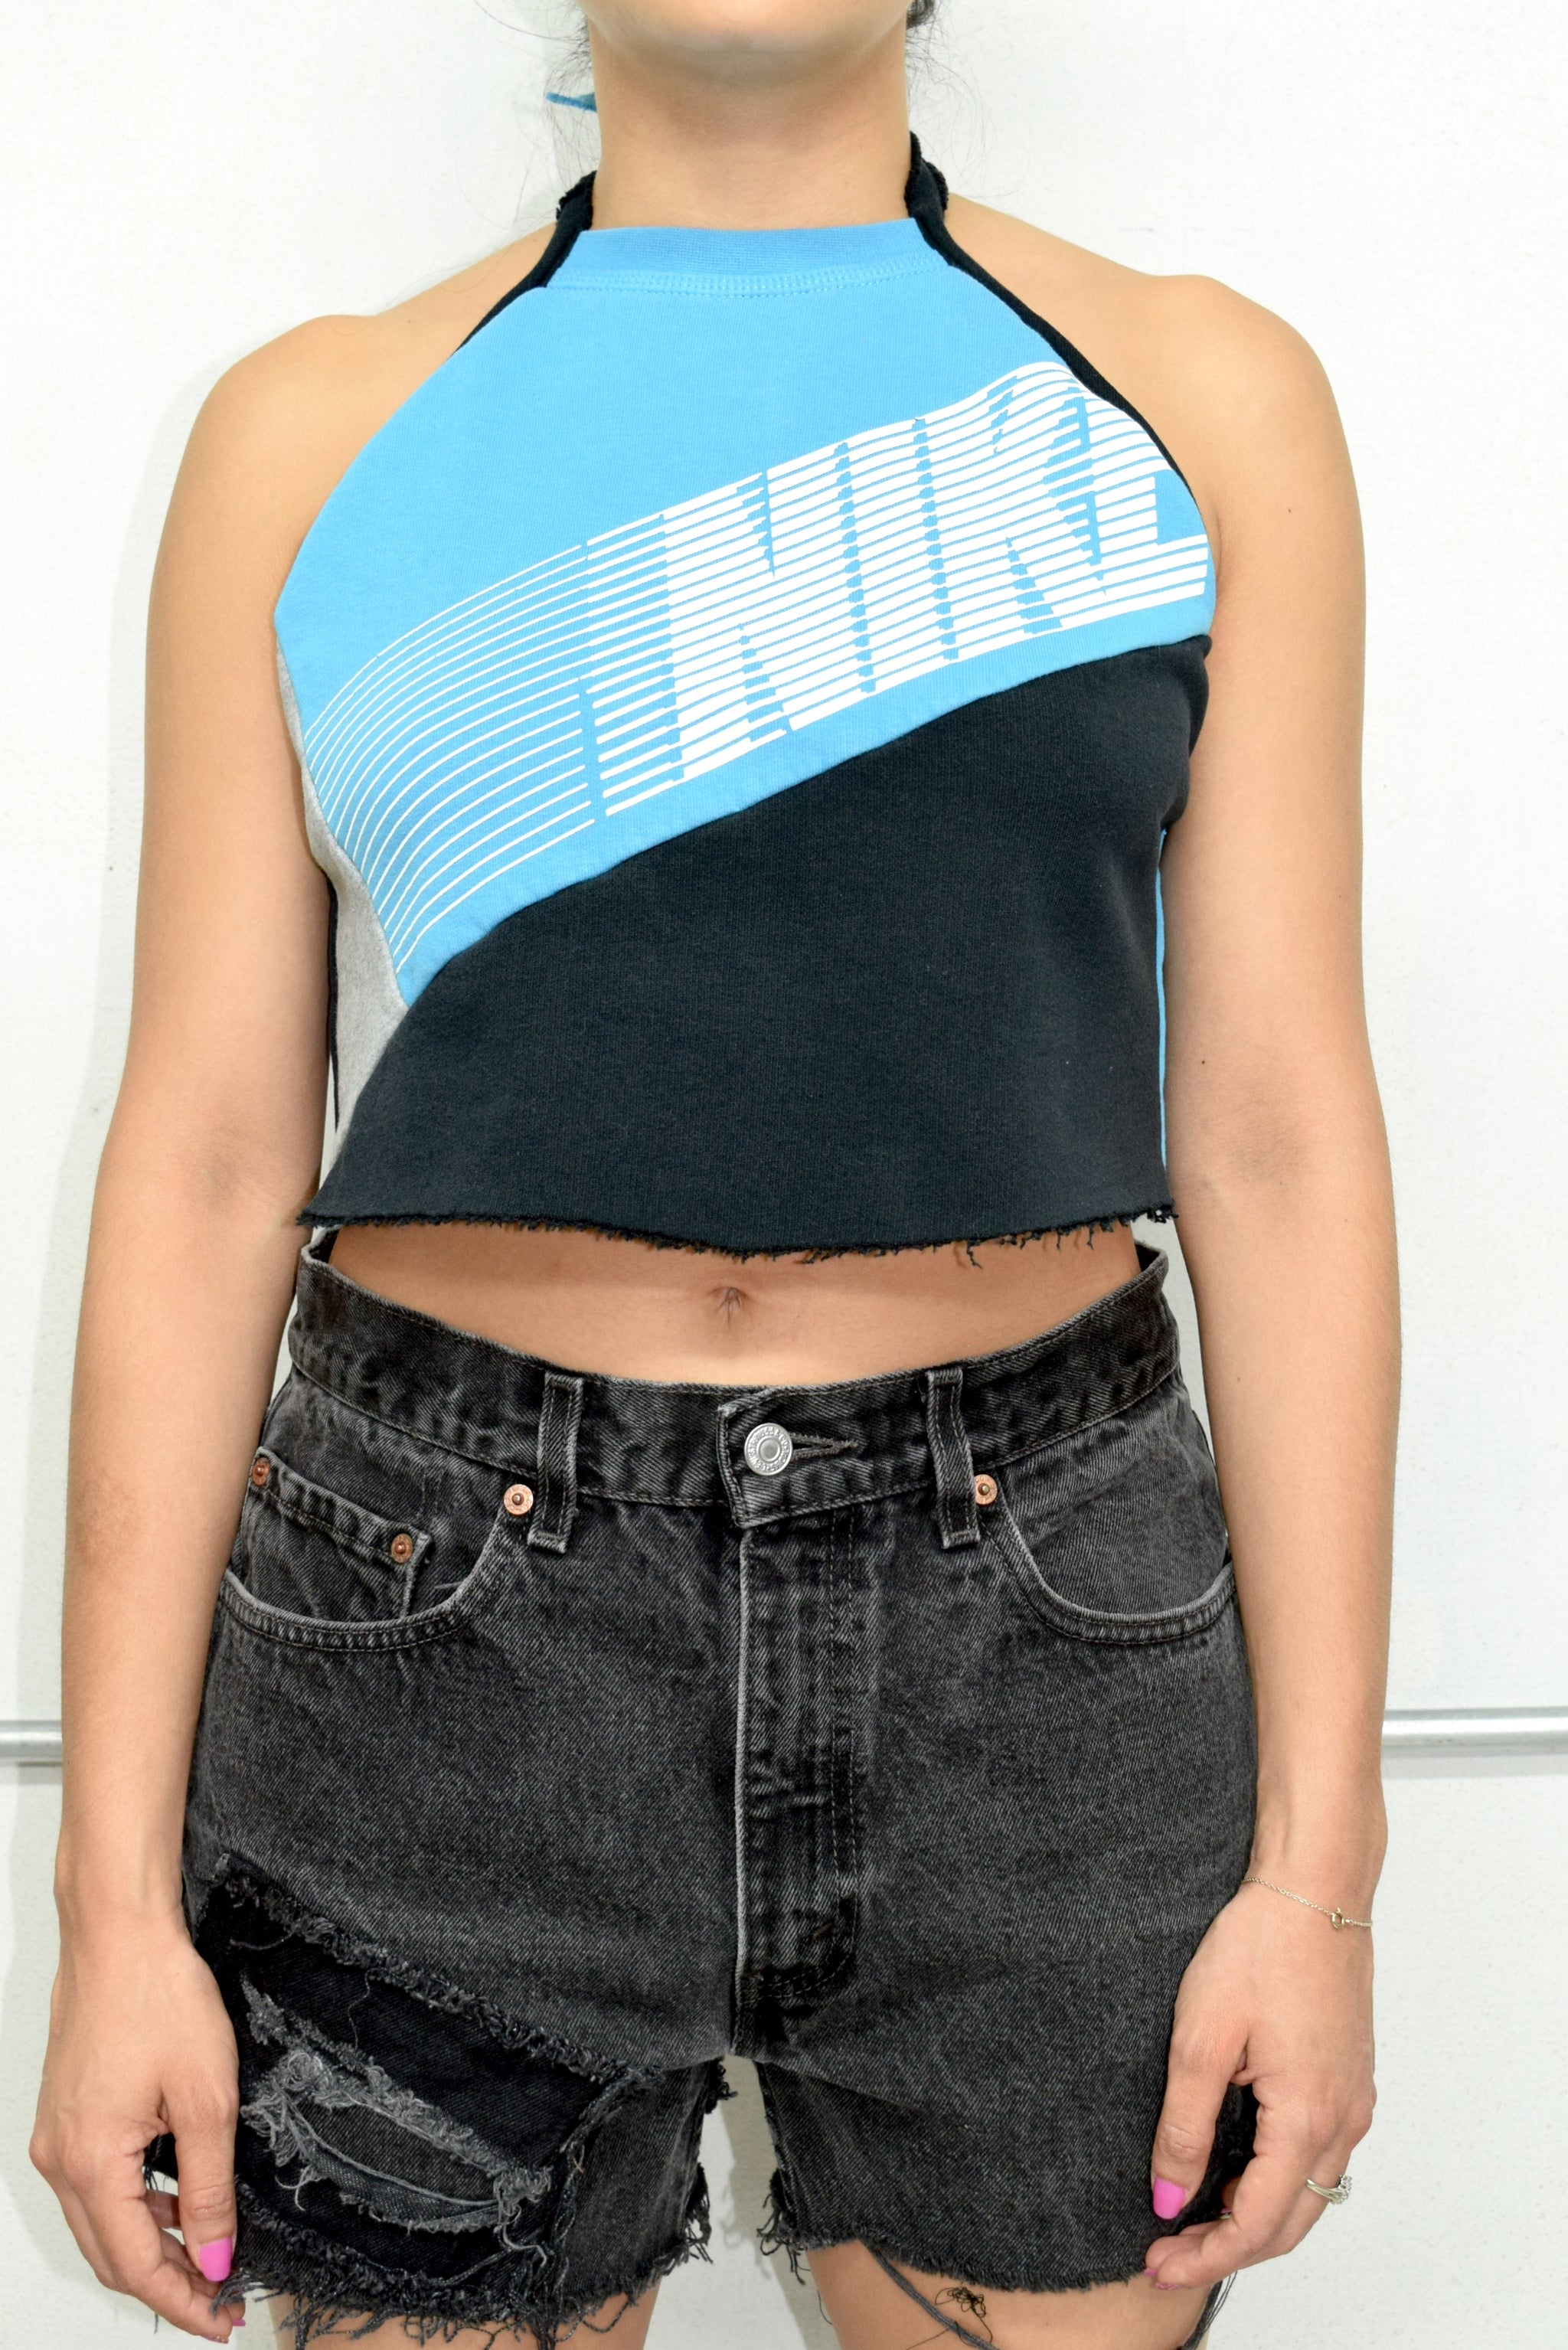 Reworked Nike Halter Top- Small